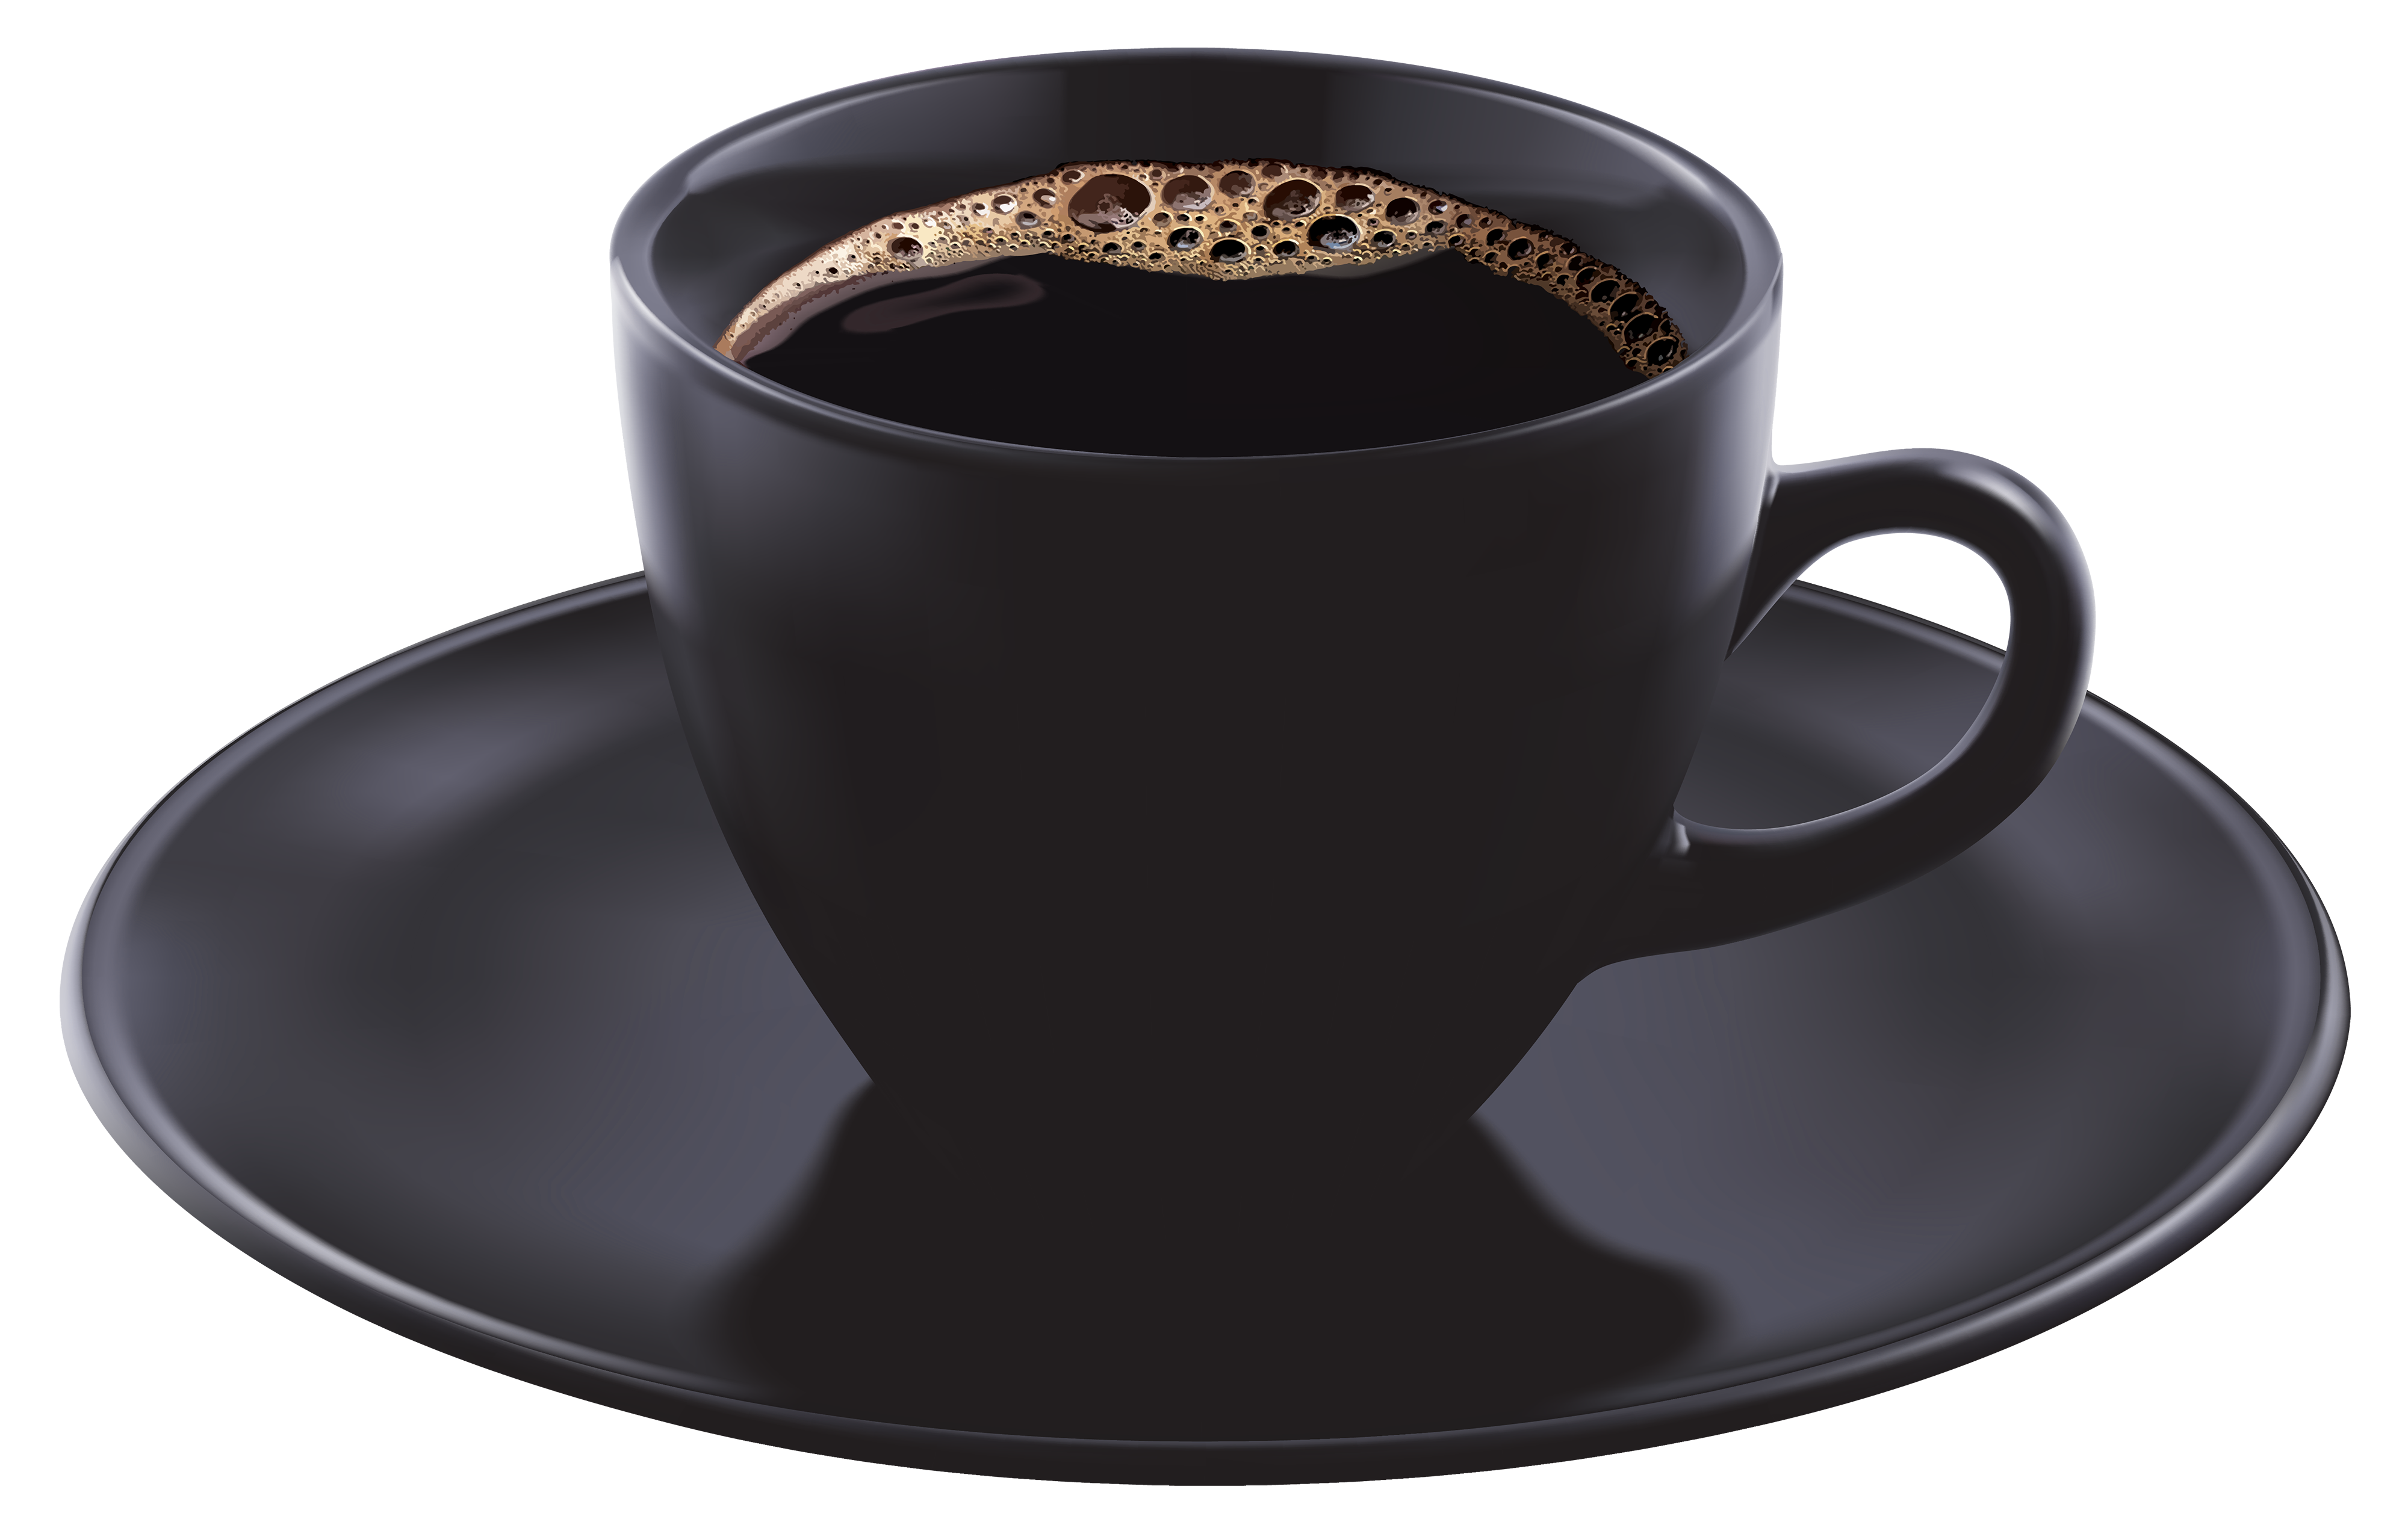 Black Coffee Cup HD Image